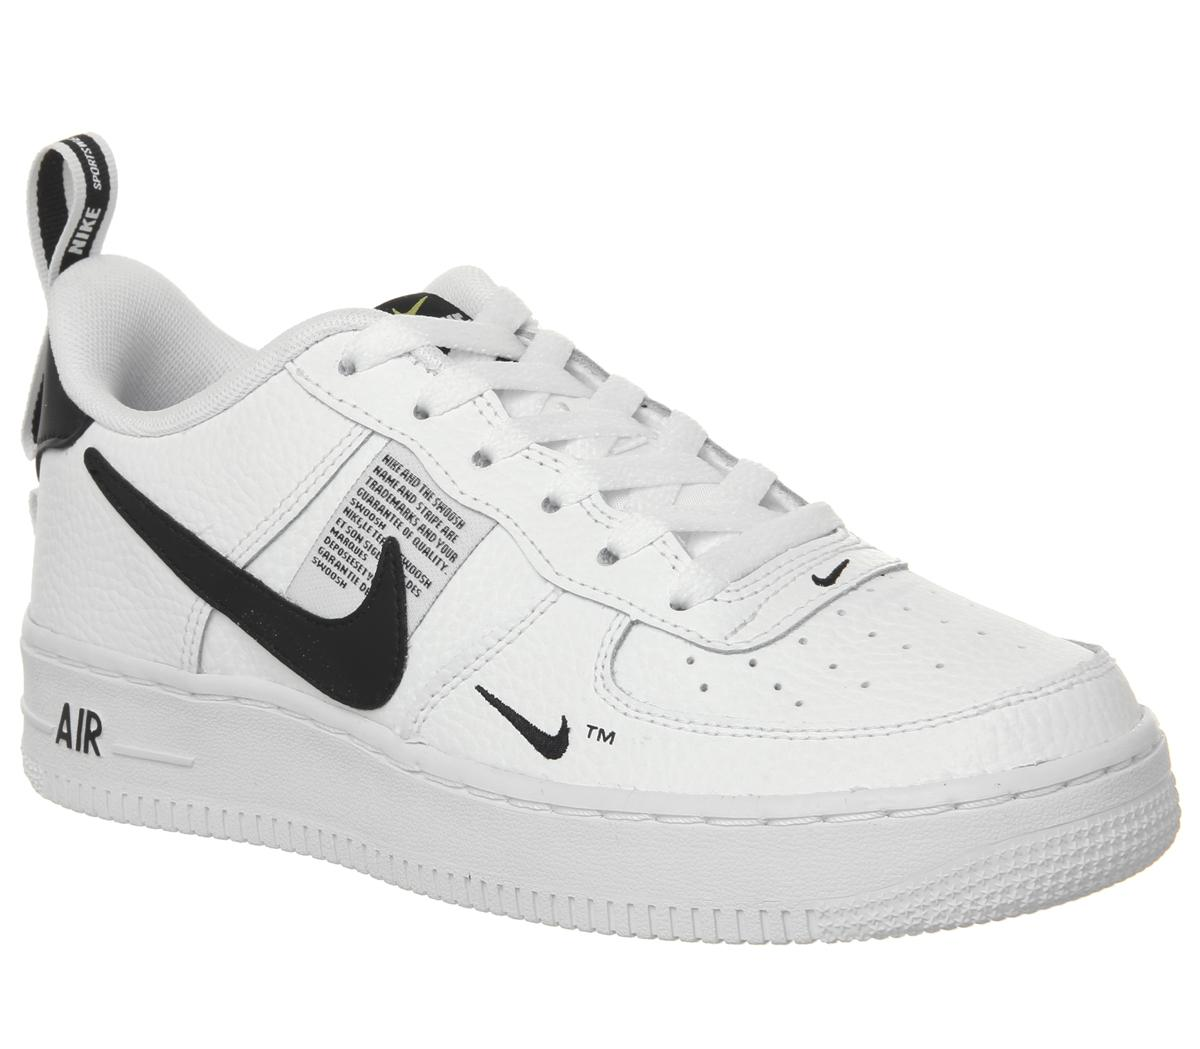 Air Force 1 Lv8 Gs Trainers